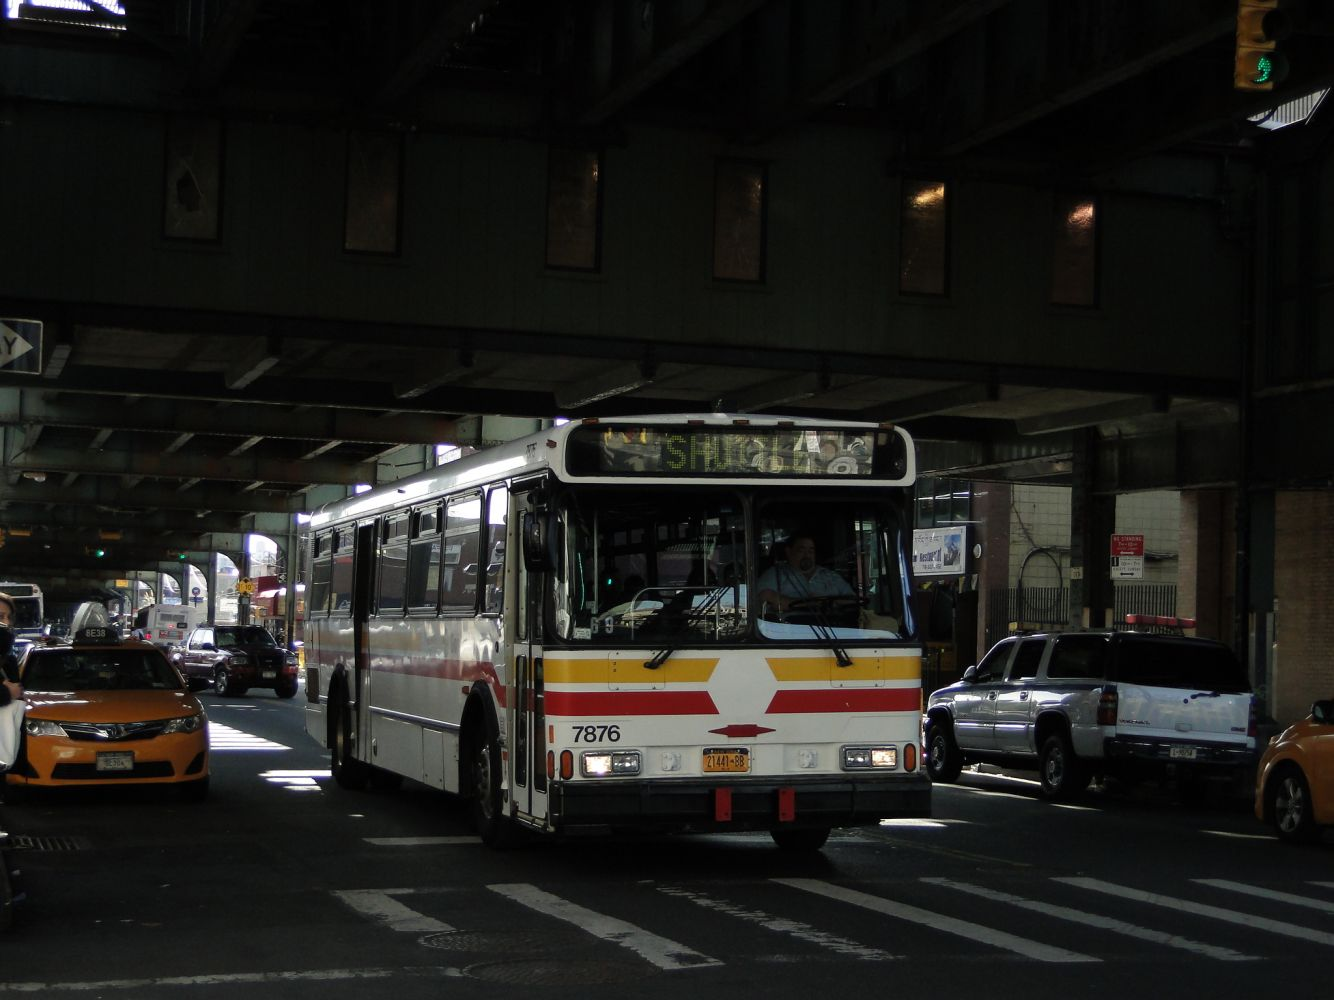 Orion V Shuttle at Roosevelt Avenue and 73rd Street